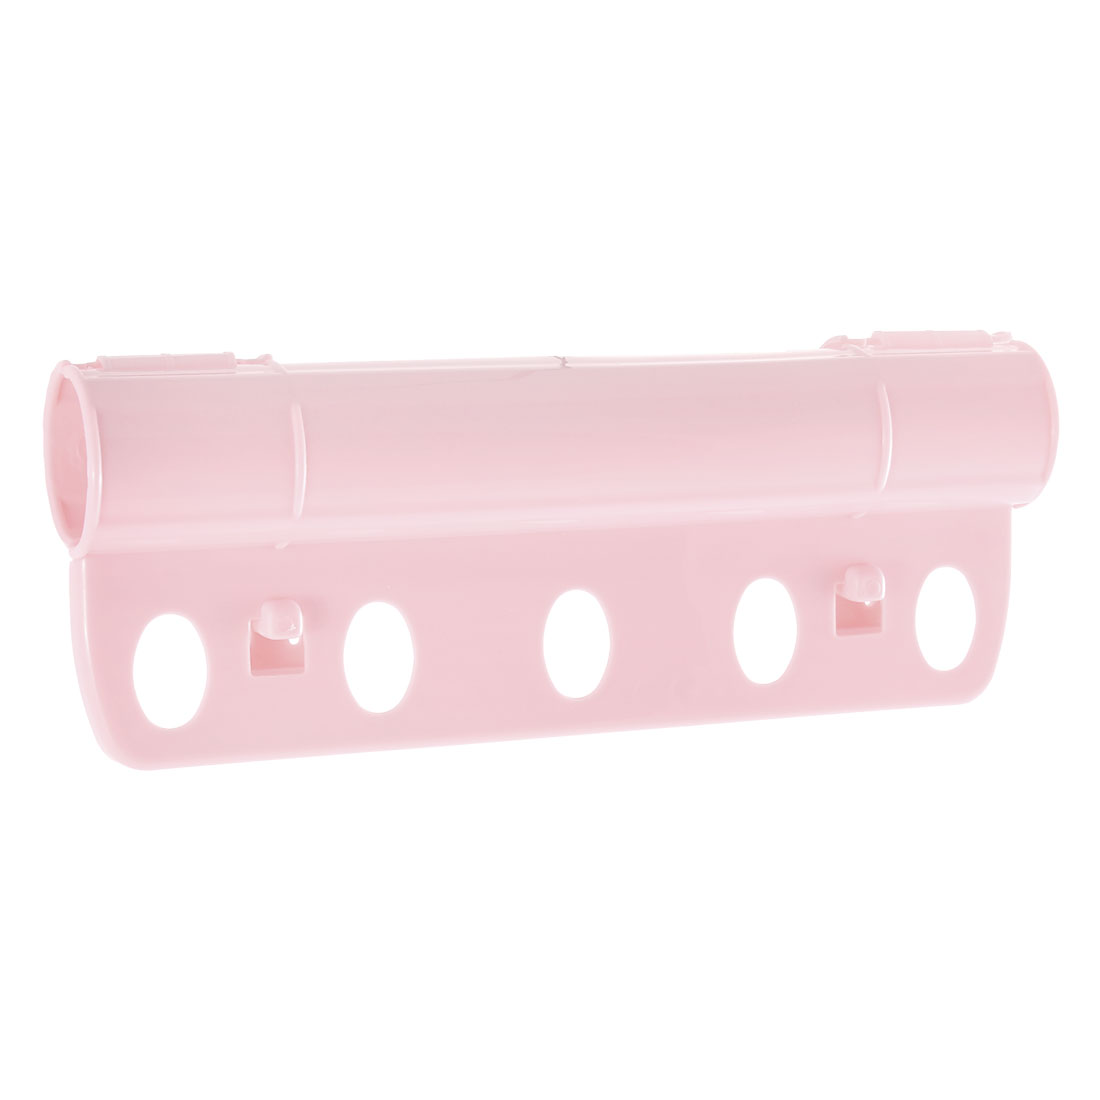 Creative 5 Holes Plastic Foldable Rack Fixed Windproof Clothes Hanger Lock Pink